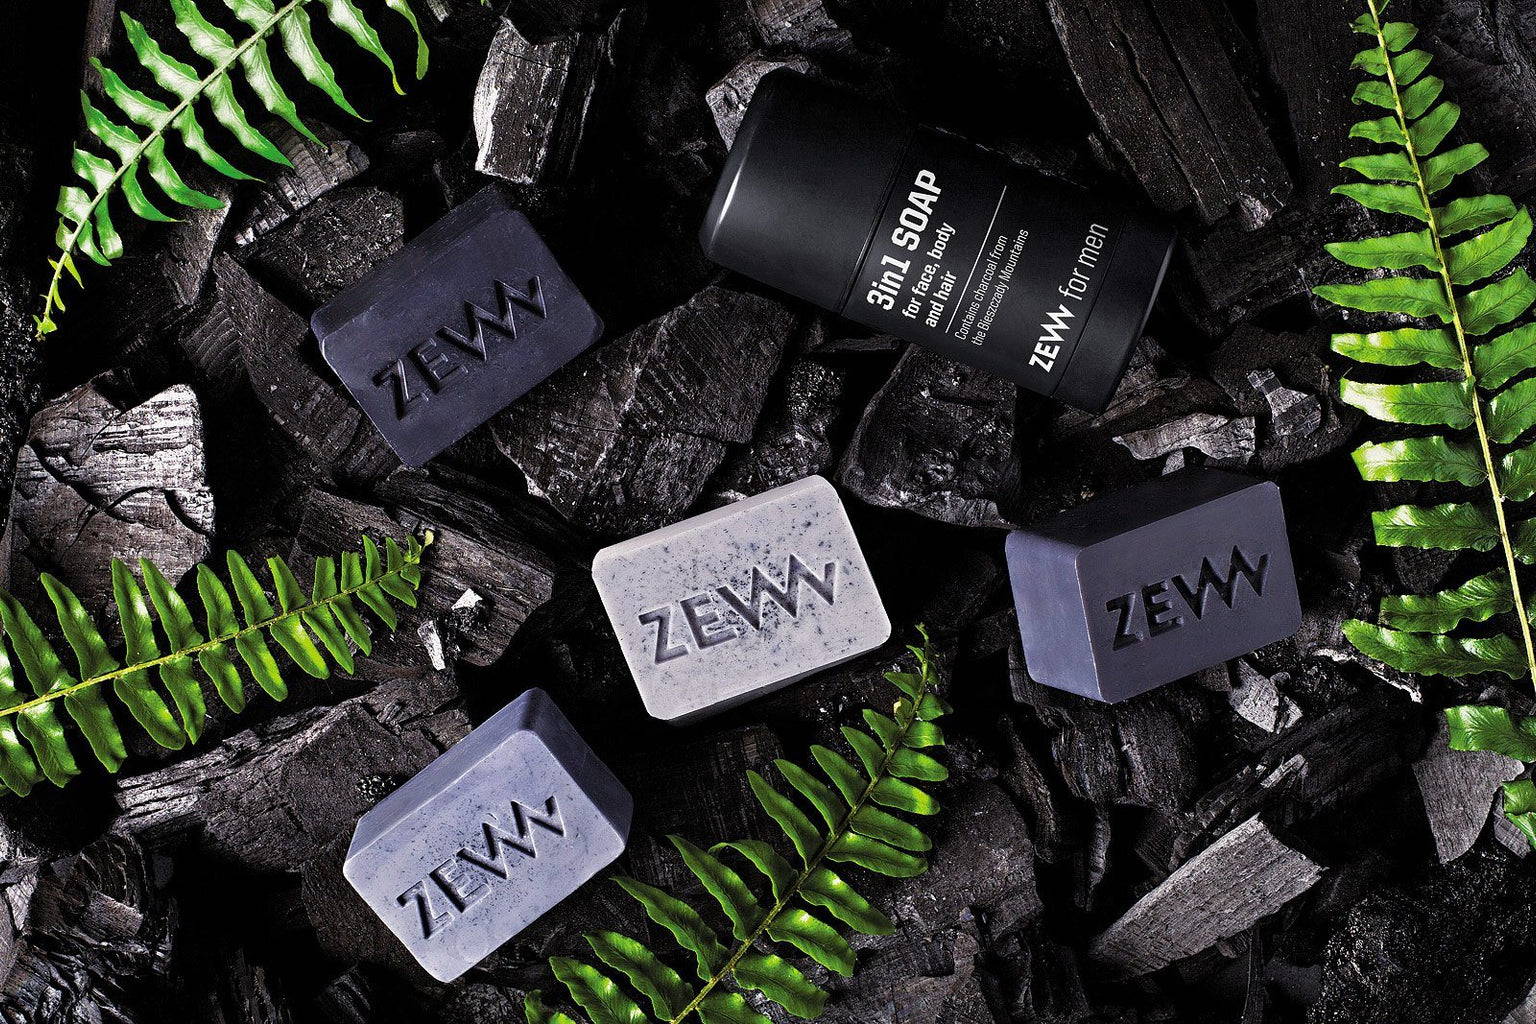 ZEW 3-in-1 Soap for Face, Body, and Hair